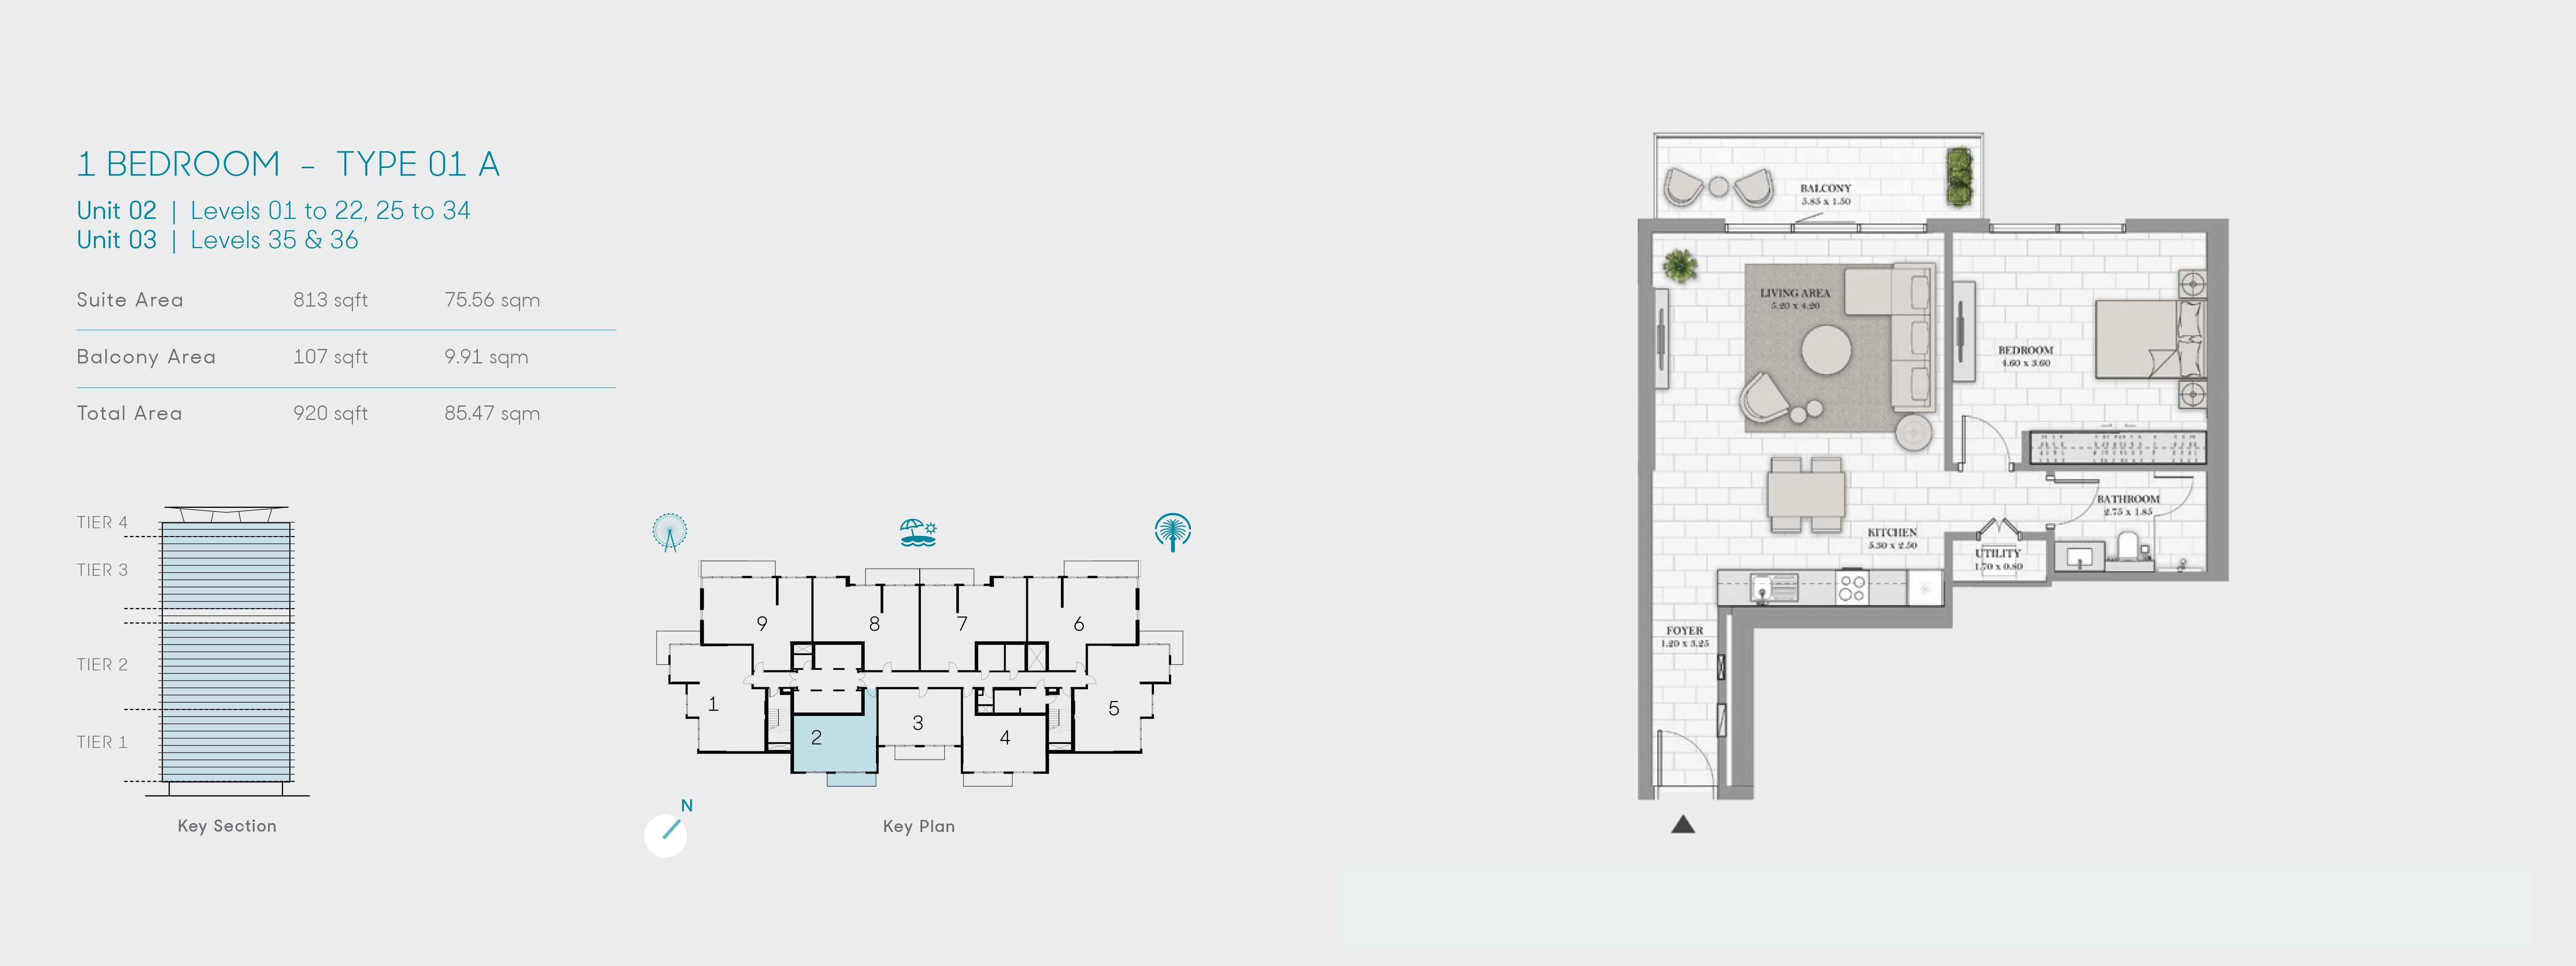 1 Bedroom-Type 01 A, Size 920 Sq Ft